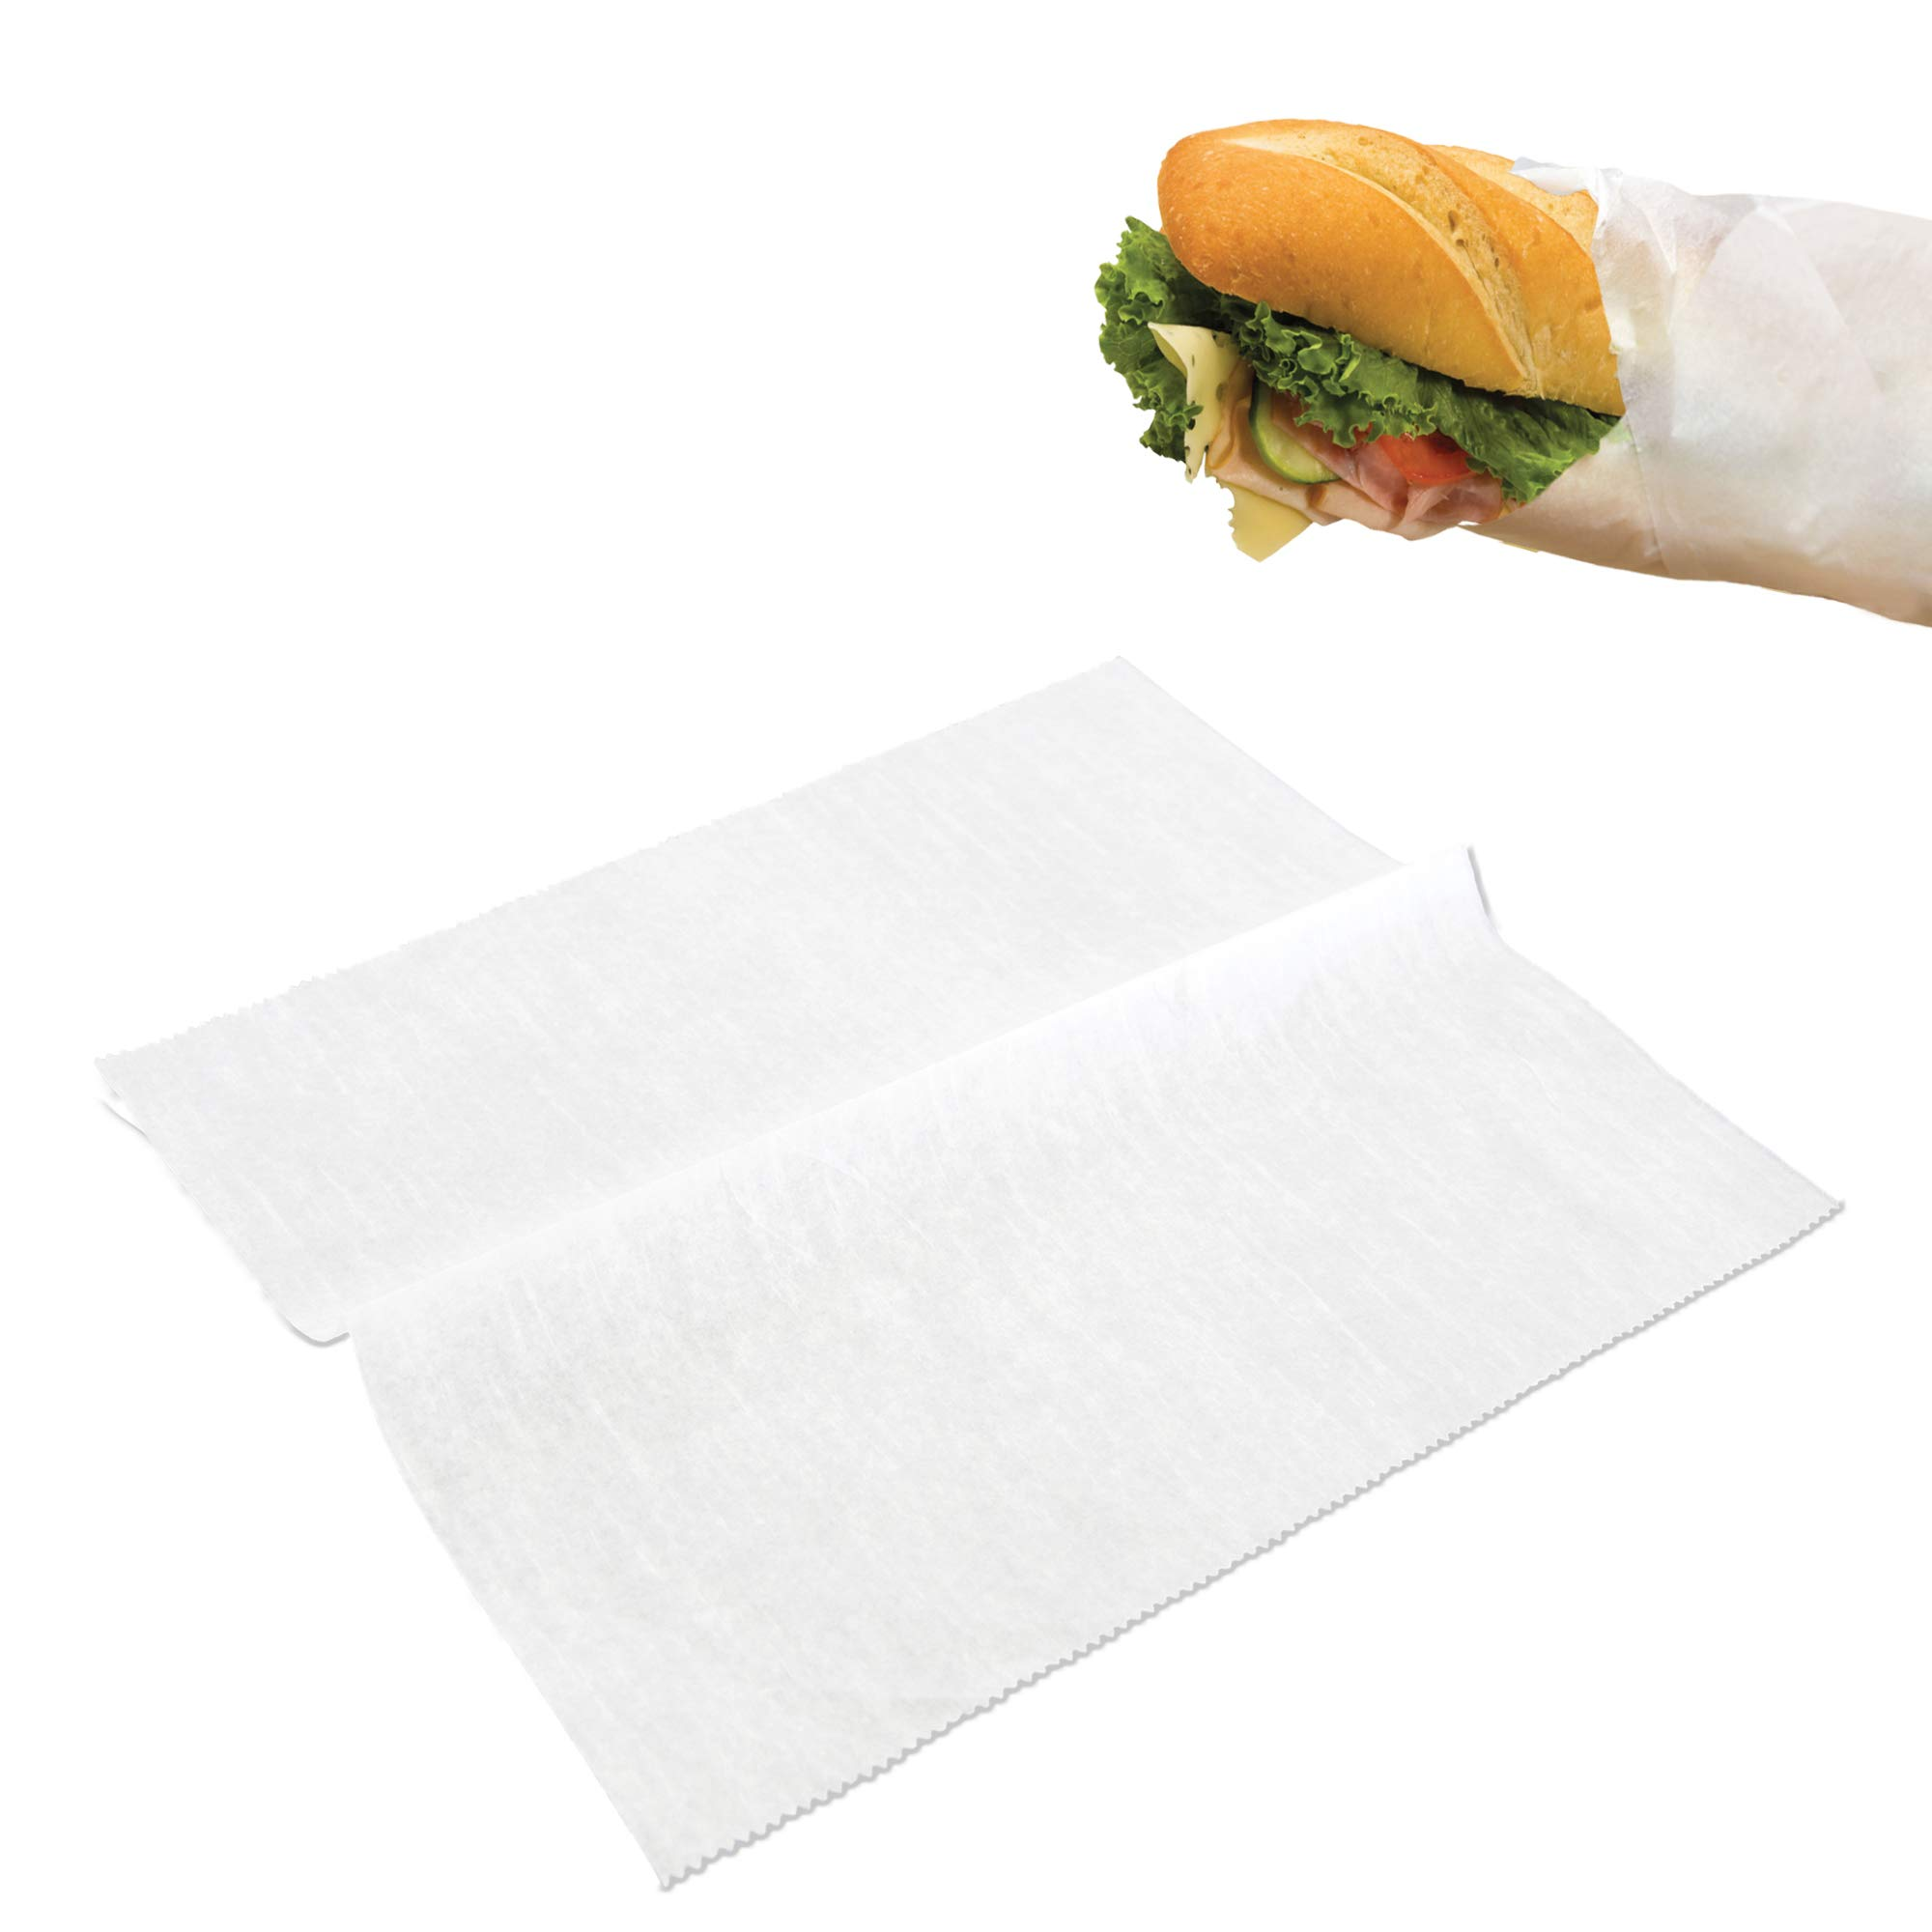 [500 Pack] Interfolded Food and Deli Dry Wrap Wax Paper Sheets with Dispenser Box, 12 X 10.75 Inch by Fit Meal Prep